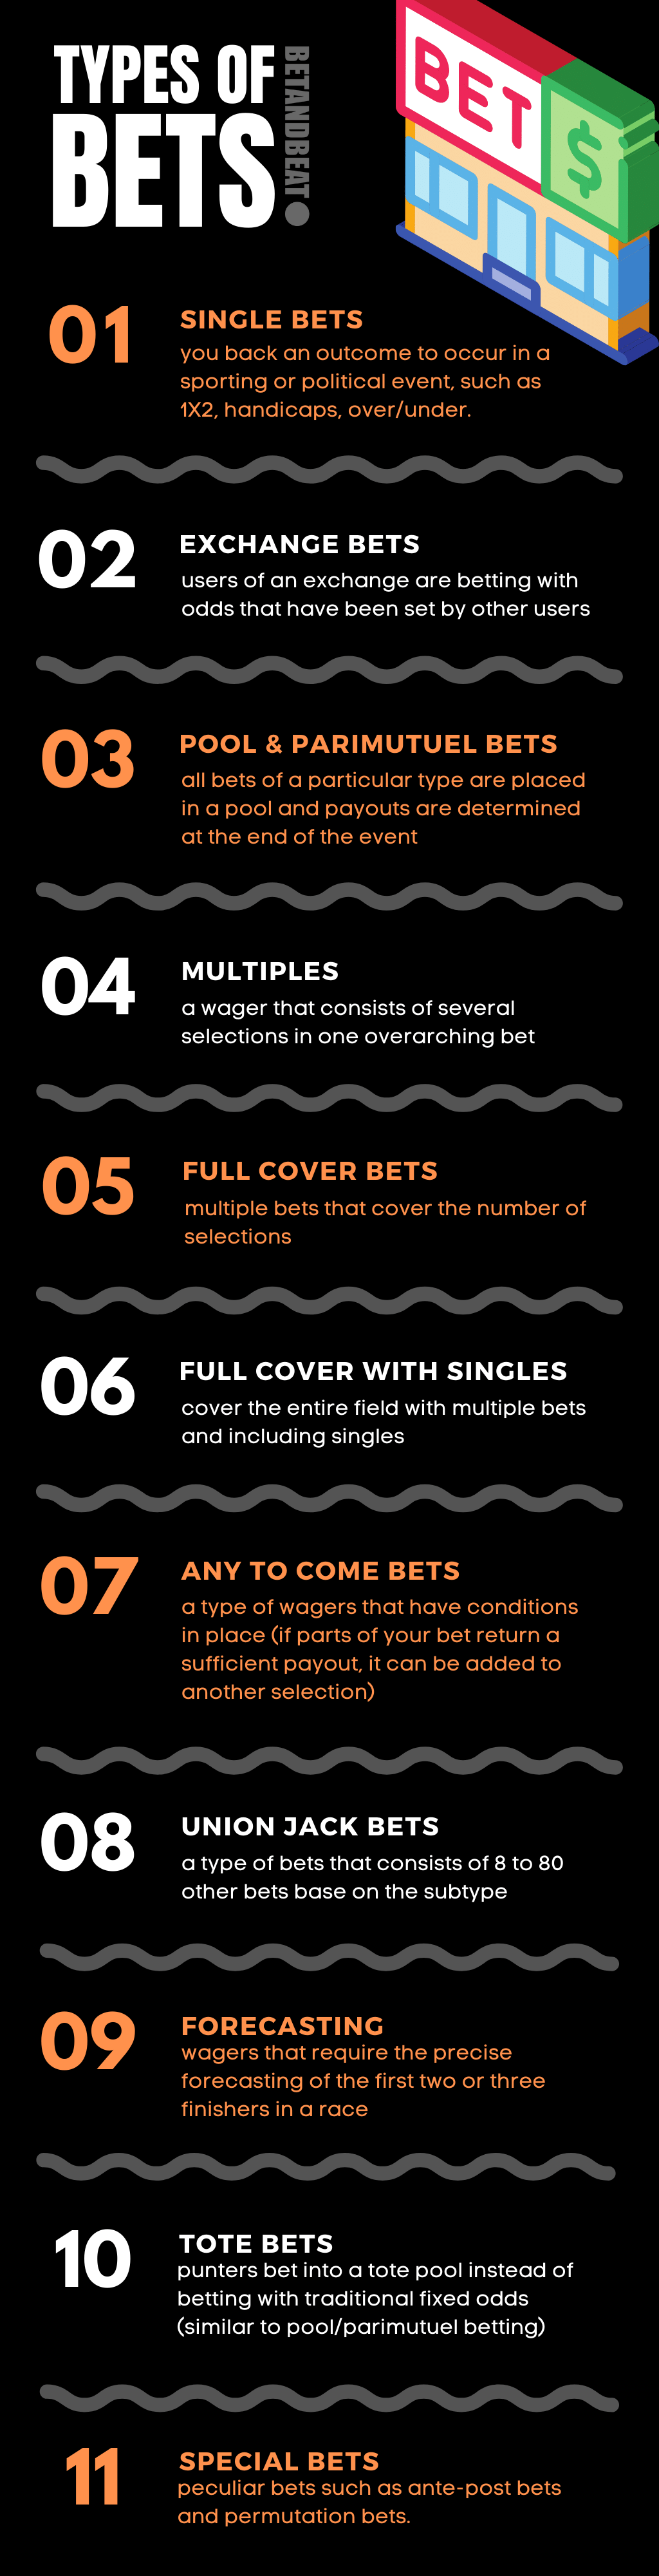 The different types of bets and wagers.